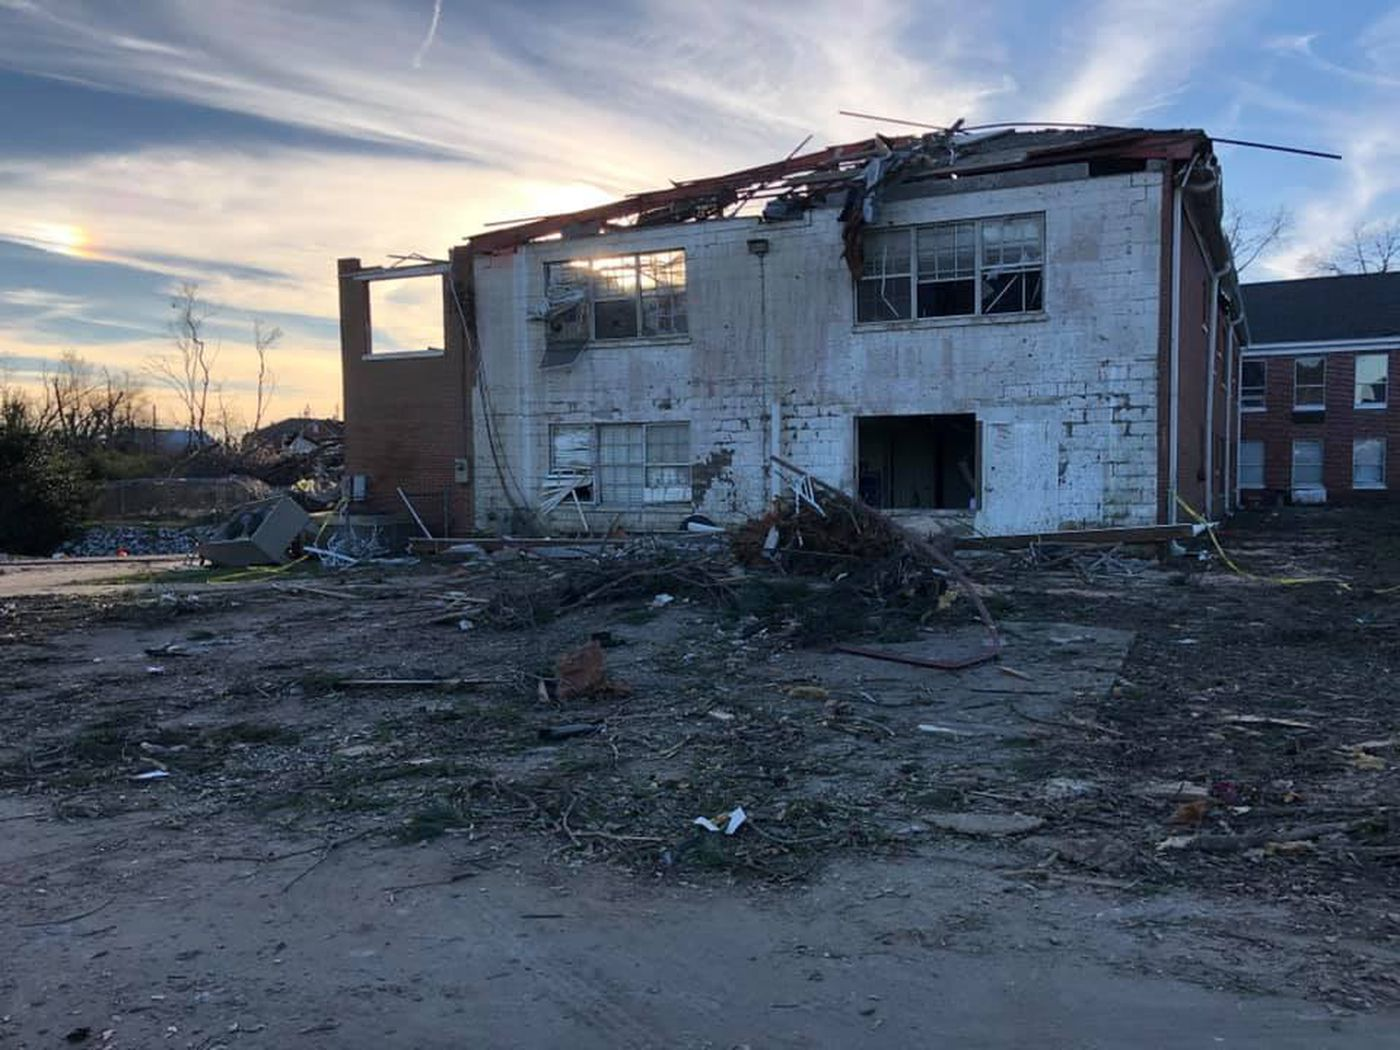 The building, along with most of the department's electronic devices, was destroyed. For the foreseeable future, the department will operate out of city hall.